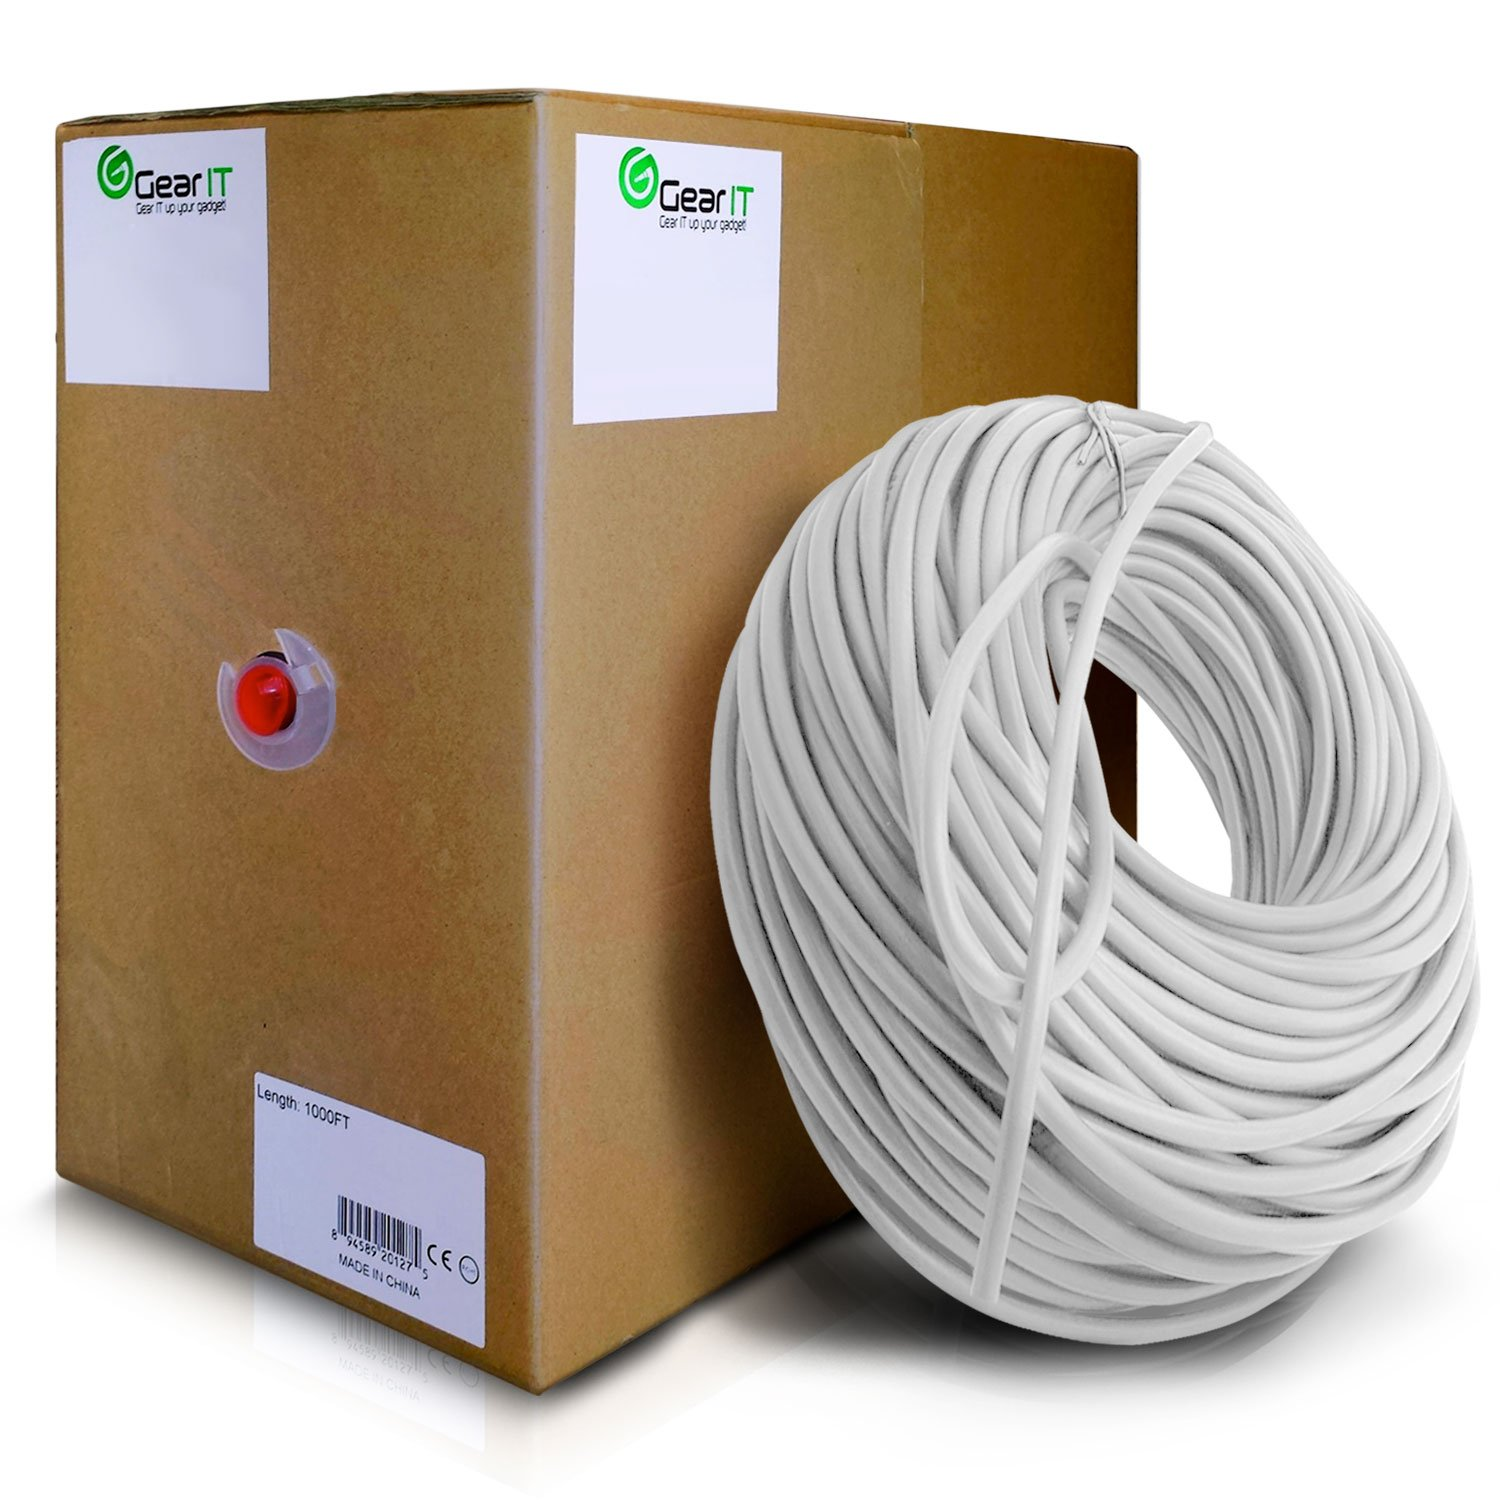 GearIT 1000 Feet Bulk Cat6 Ethernet Cable - Cat 6e 550Mhz 24AWG Full Copper Wire UTP Pull Box - In-Wall Rated (CM) Stranded Cat6, White by GearIT